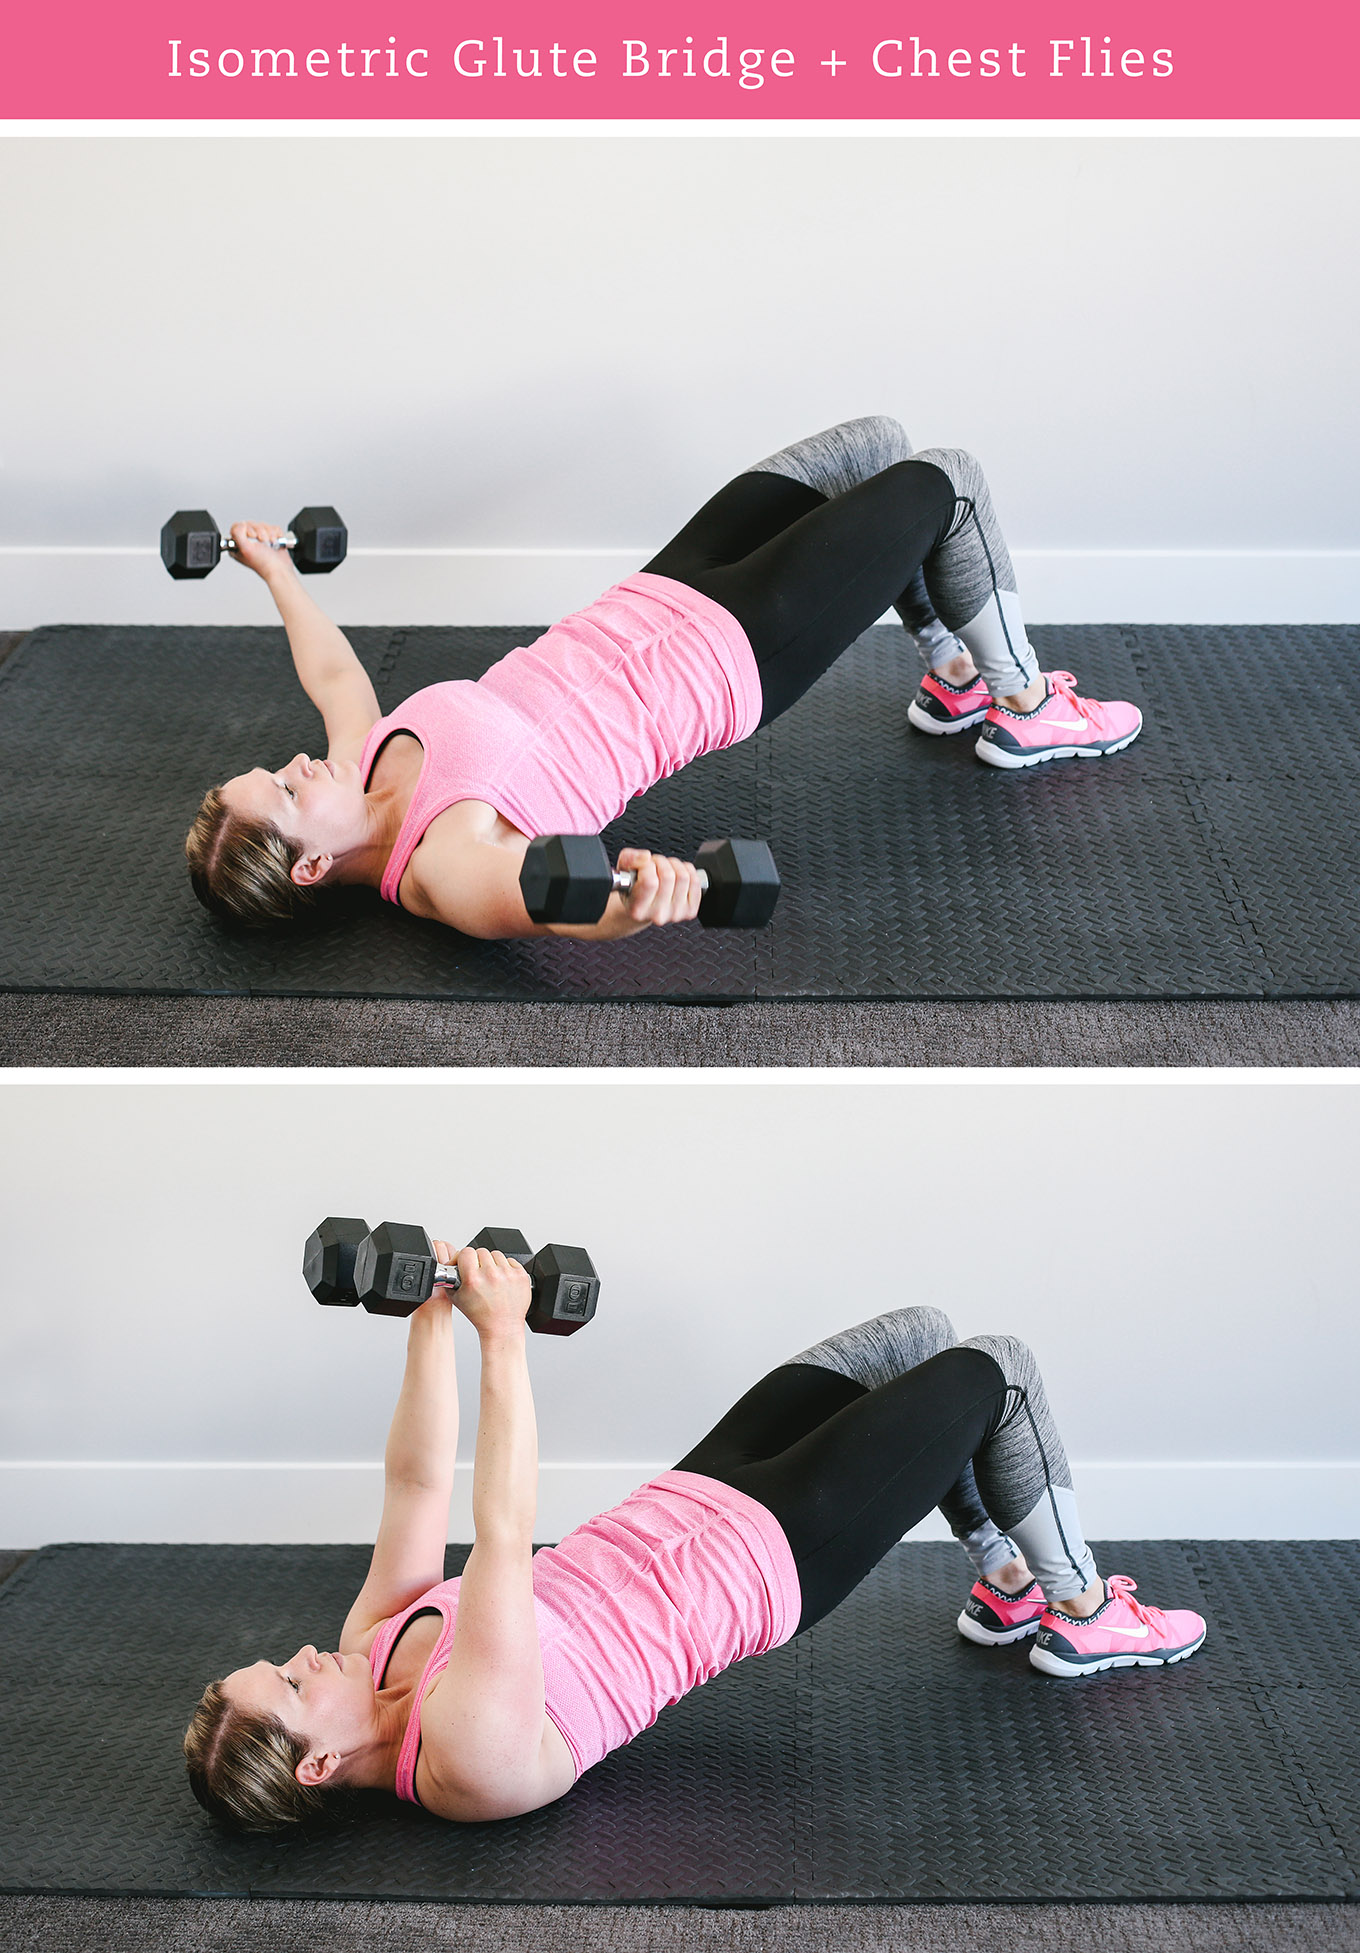 """Interested in fitness training at home but unsure where to start? Check out """"A Beginner's Guide to Strength Training at Home"""" for 5 tips on safe, effective weight training and a 30-minute total body workout you can do today!"""